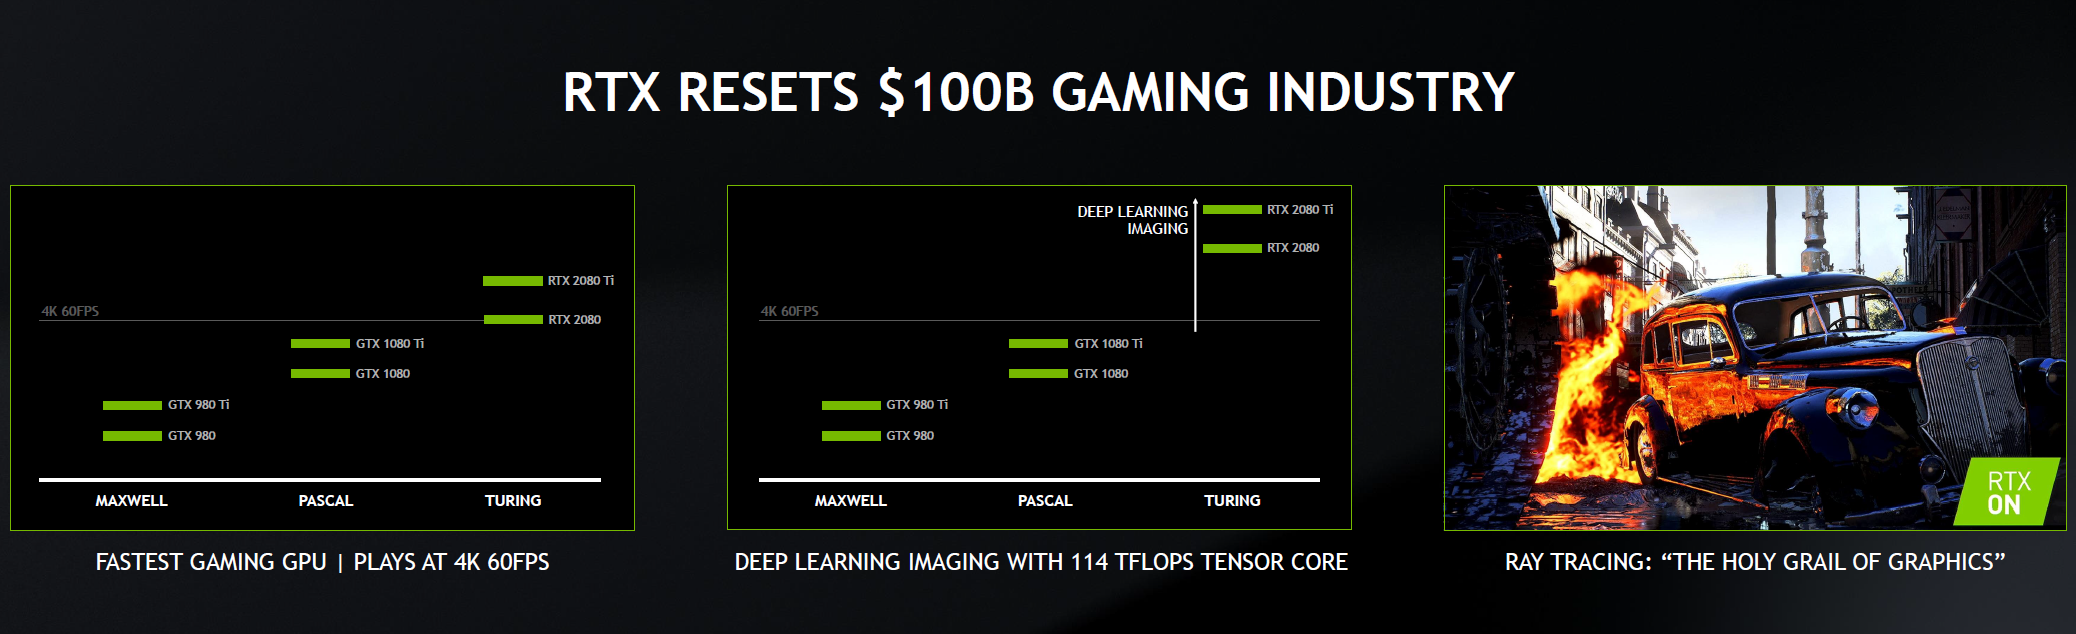 NVIDIA GeForce RTX 2080 Ti and RTX 2080 Official Gaming